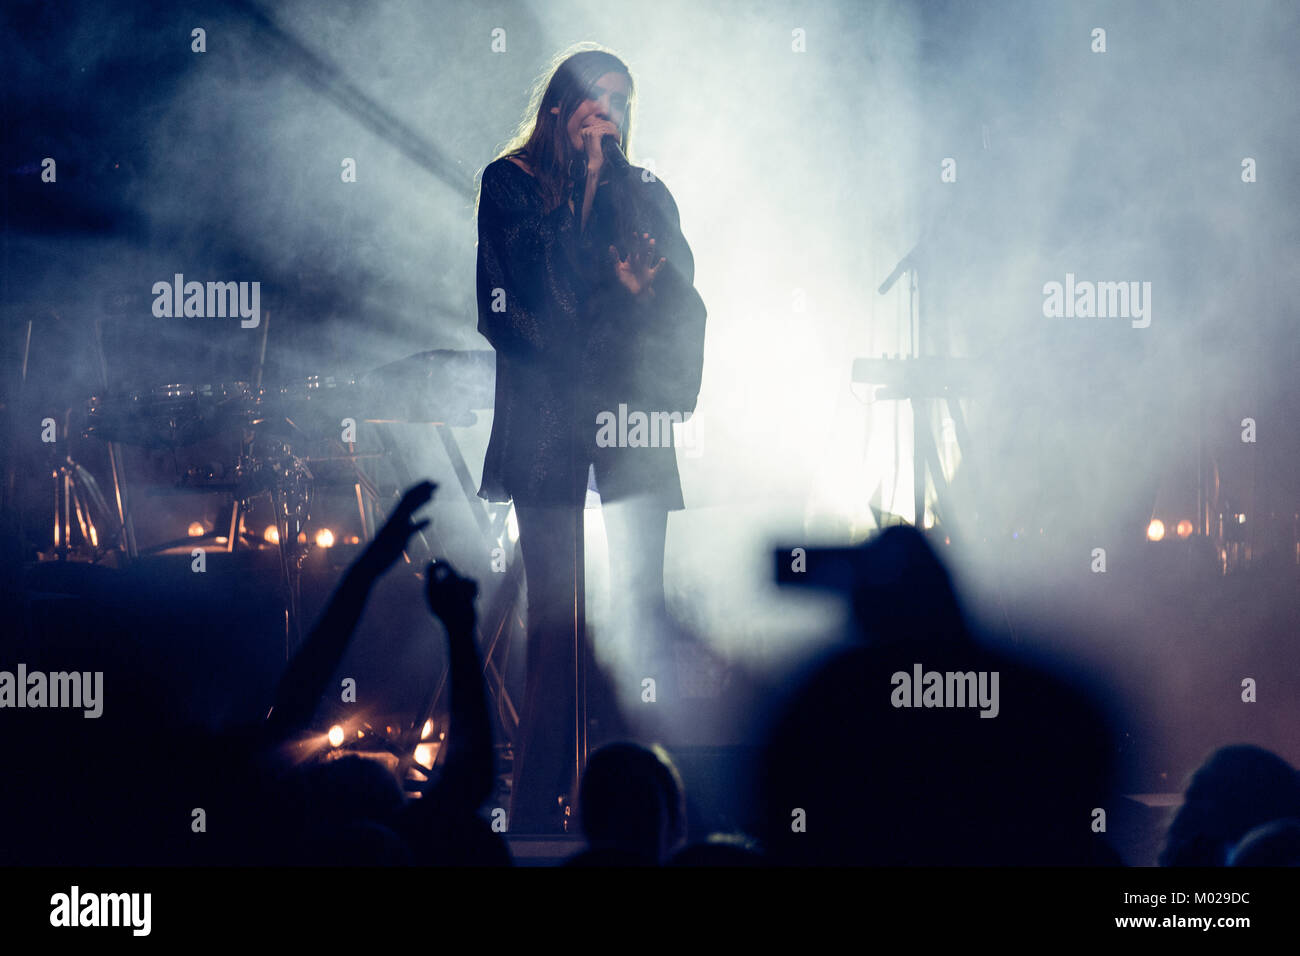 The Swedish singer-songwriter and musician Lykke Li performs a live concert at Sentrum Scene in Oslo. Norway, 08/12 - Stock Image